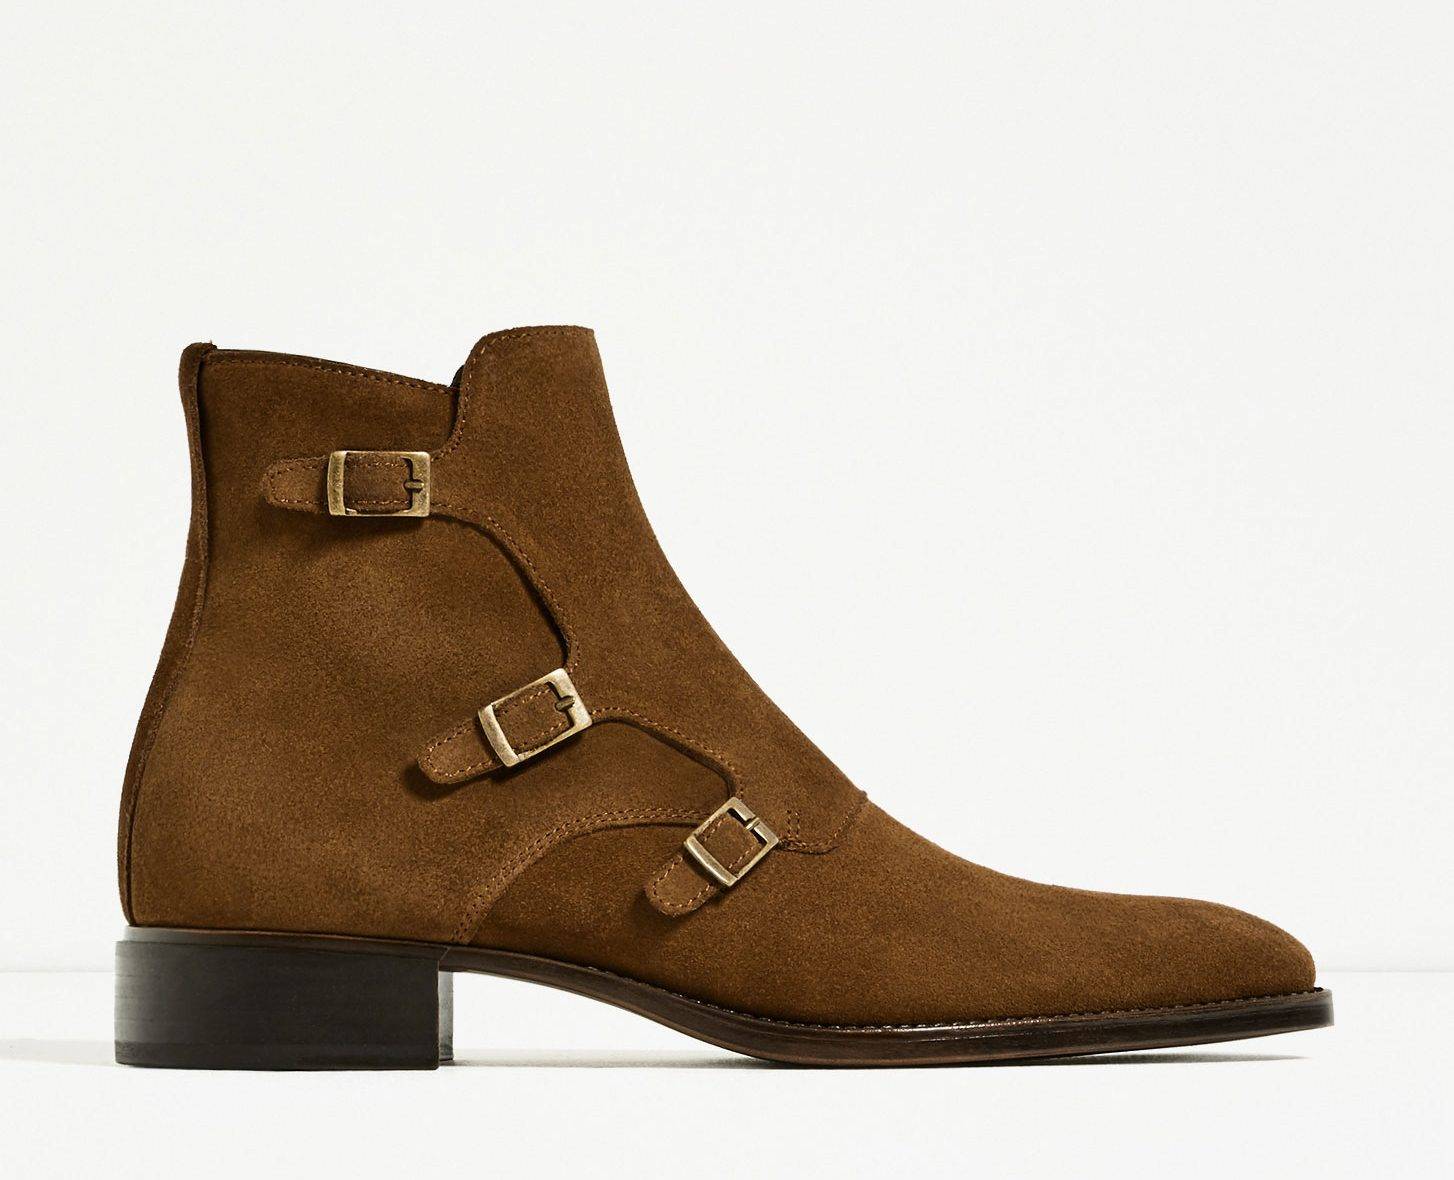 Fall Selects: Top 5 Boots Under $300